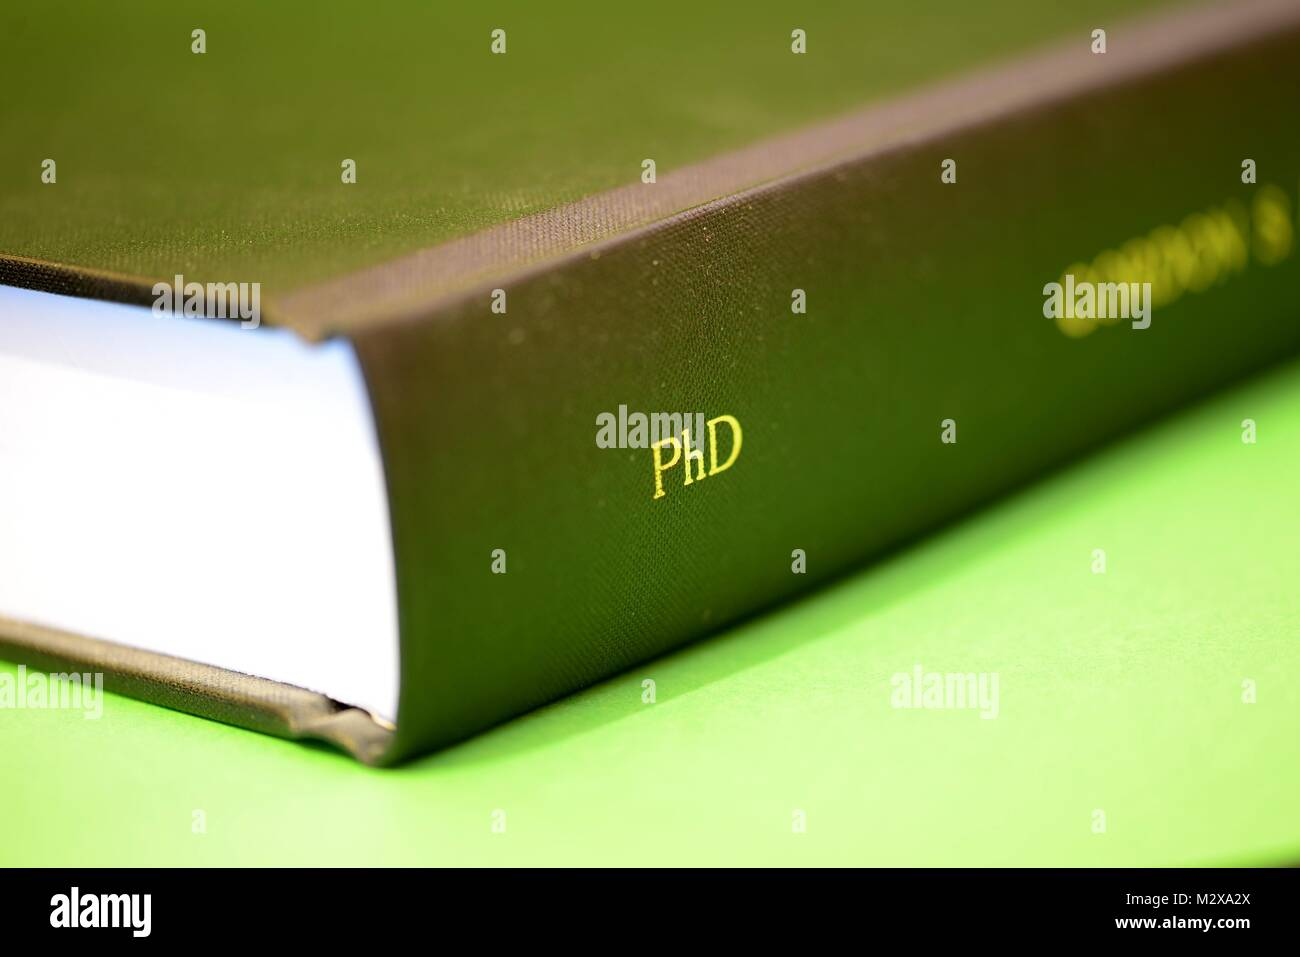 completed phd dissertations Graduation deadlines download a pdf of these deadlines  all defended, completed phd dissertations and master's theses must be submitted to umi/proquest.